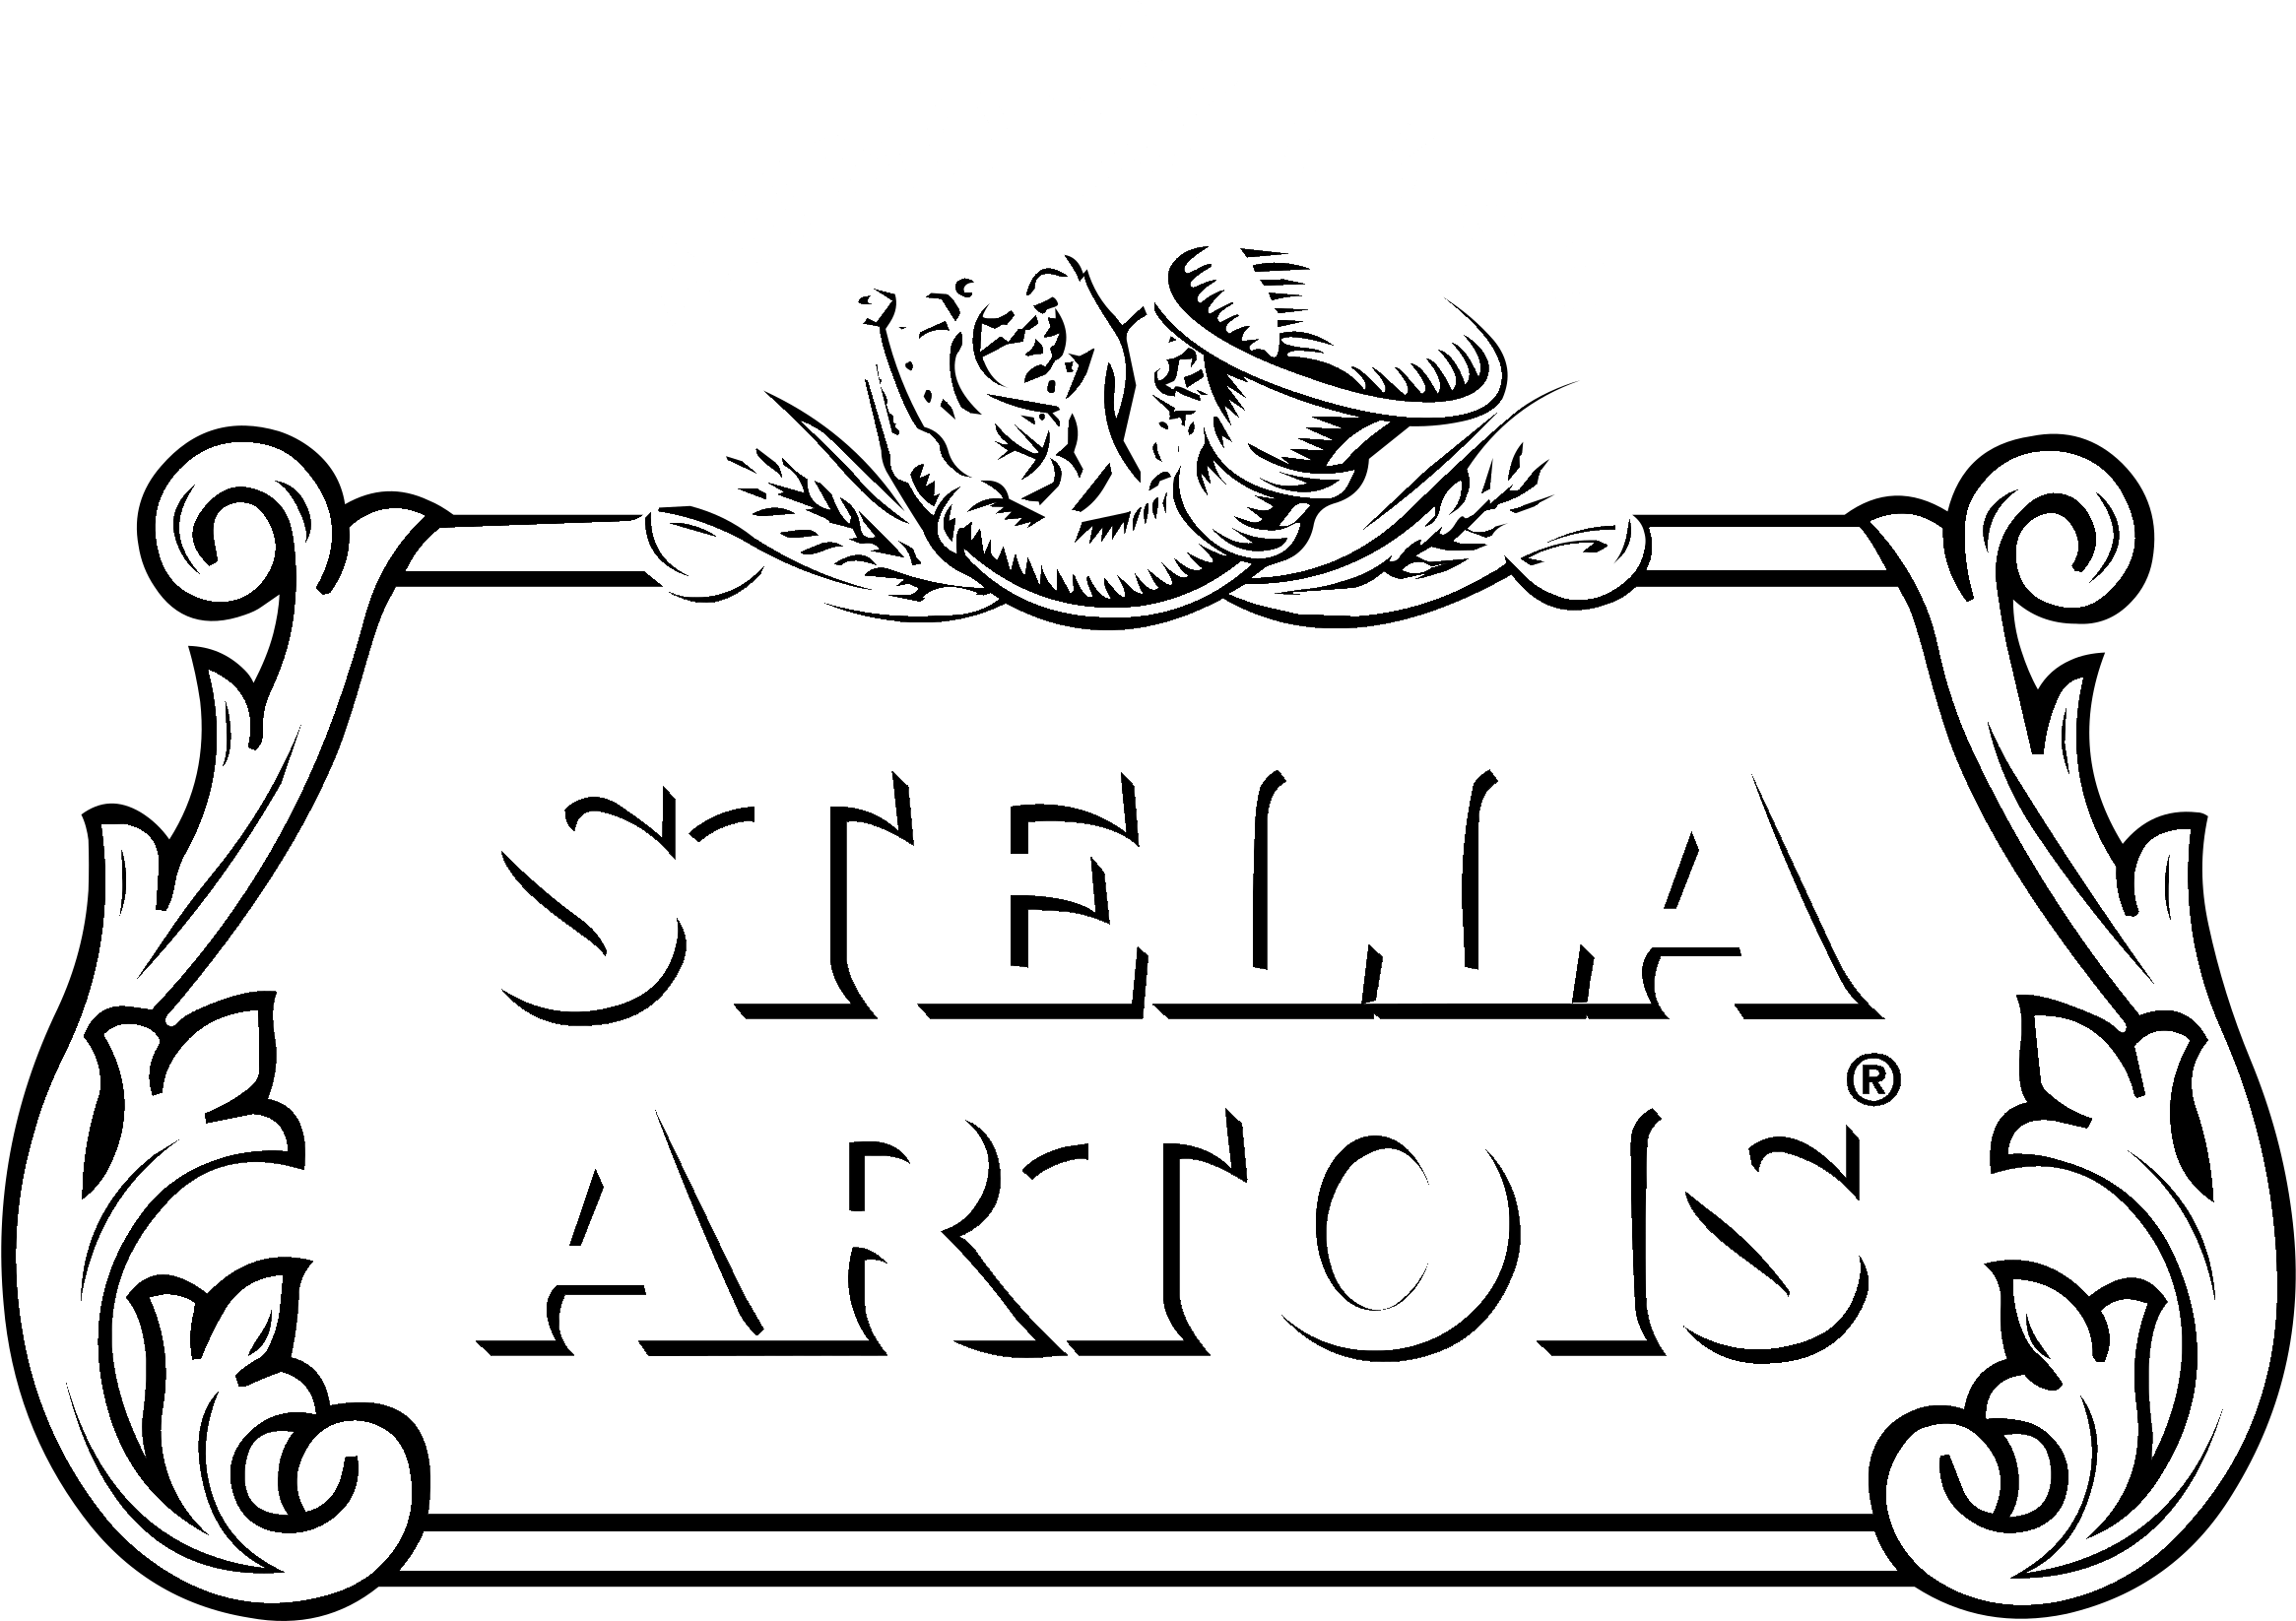 Stella artois logo png images collection for Free Download.